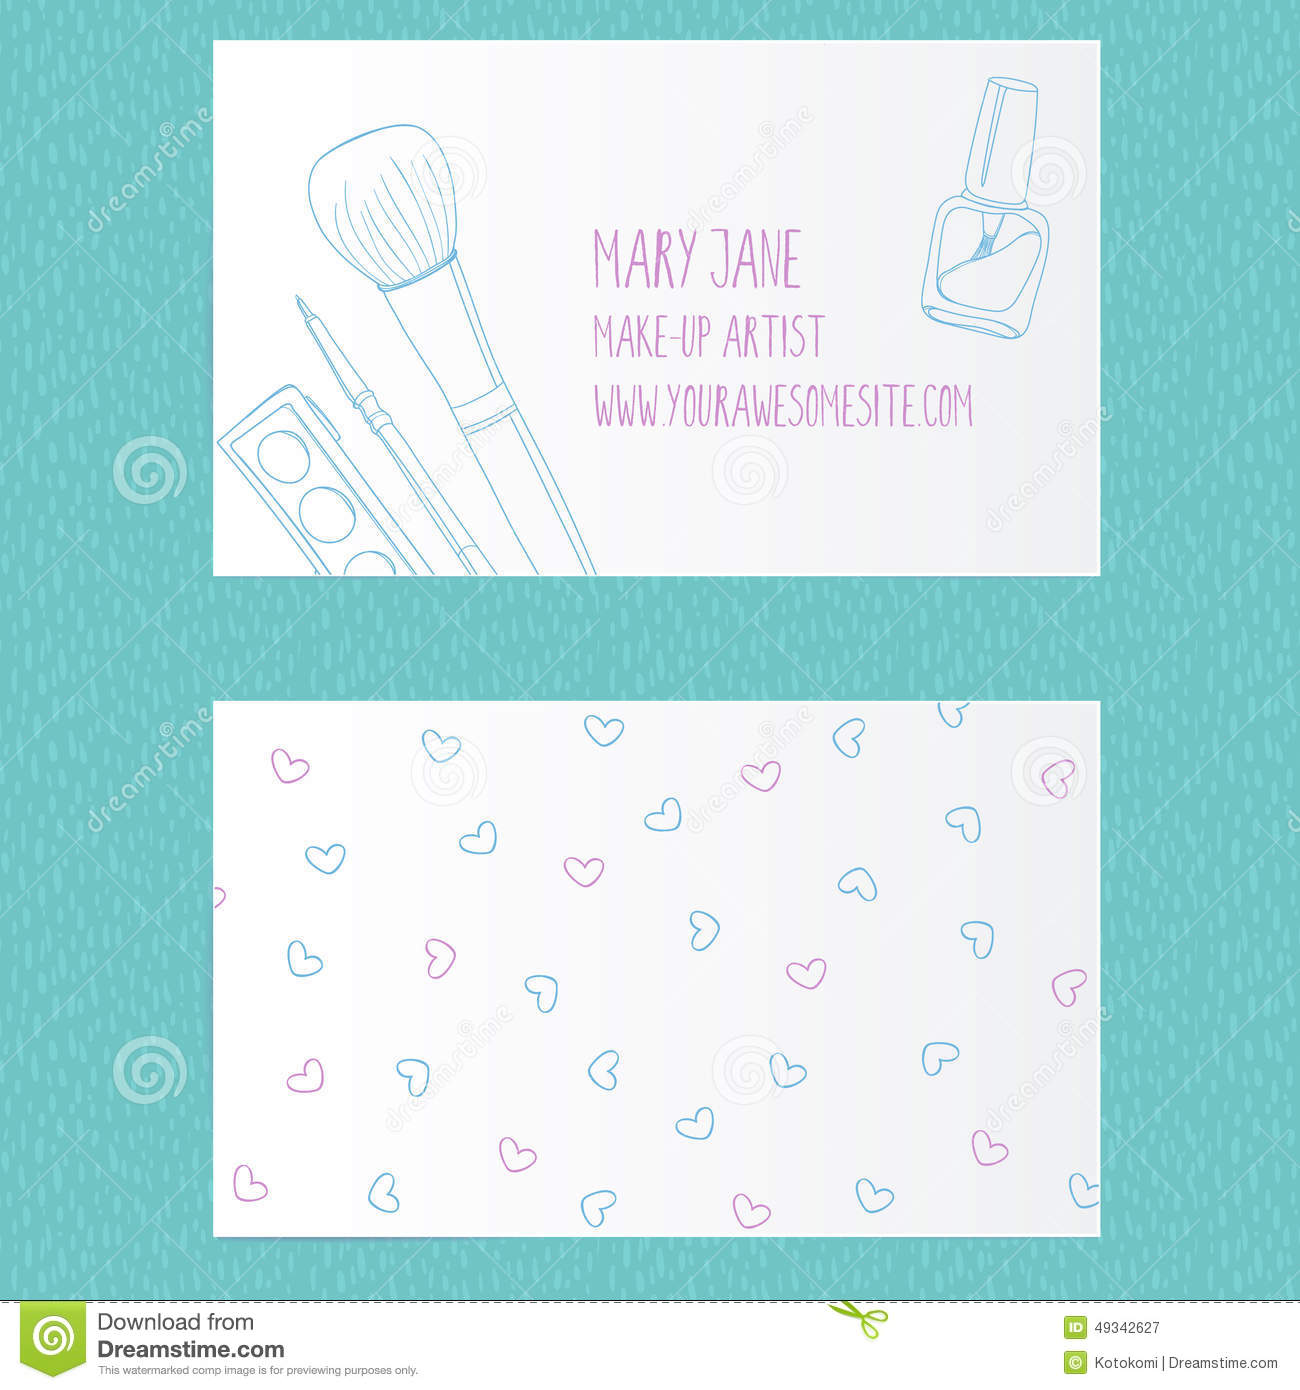 Make Up Artist Business Card Template Stock Illustration ...